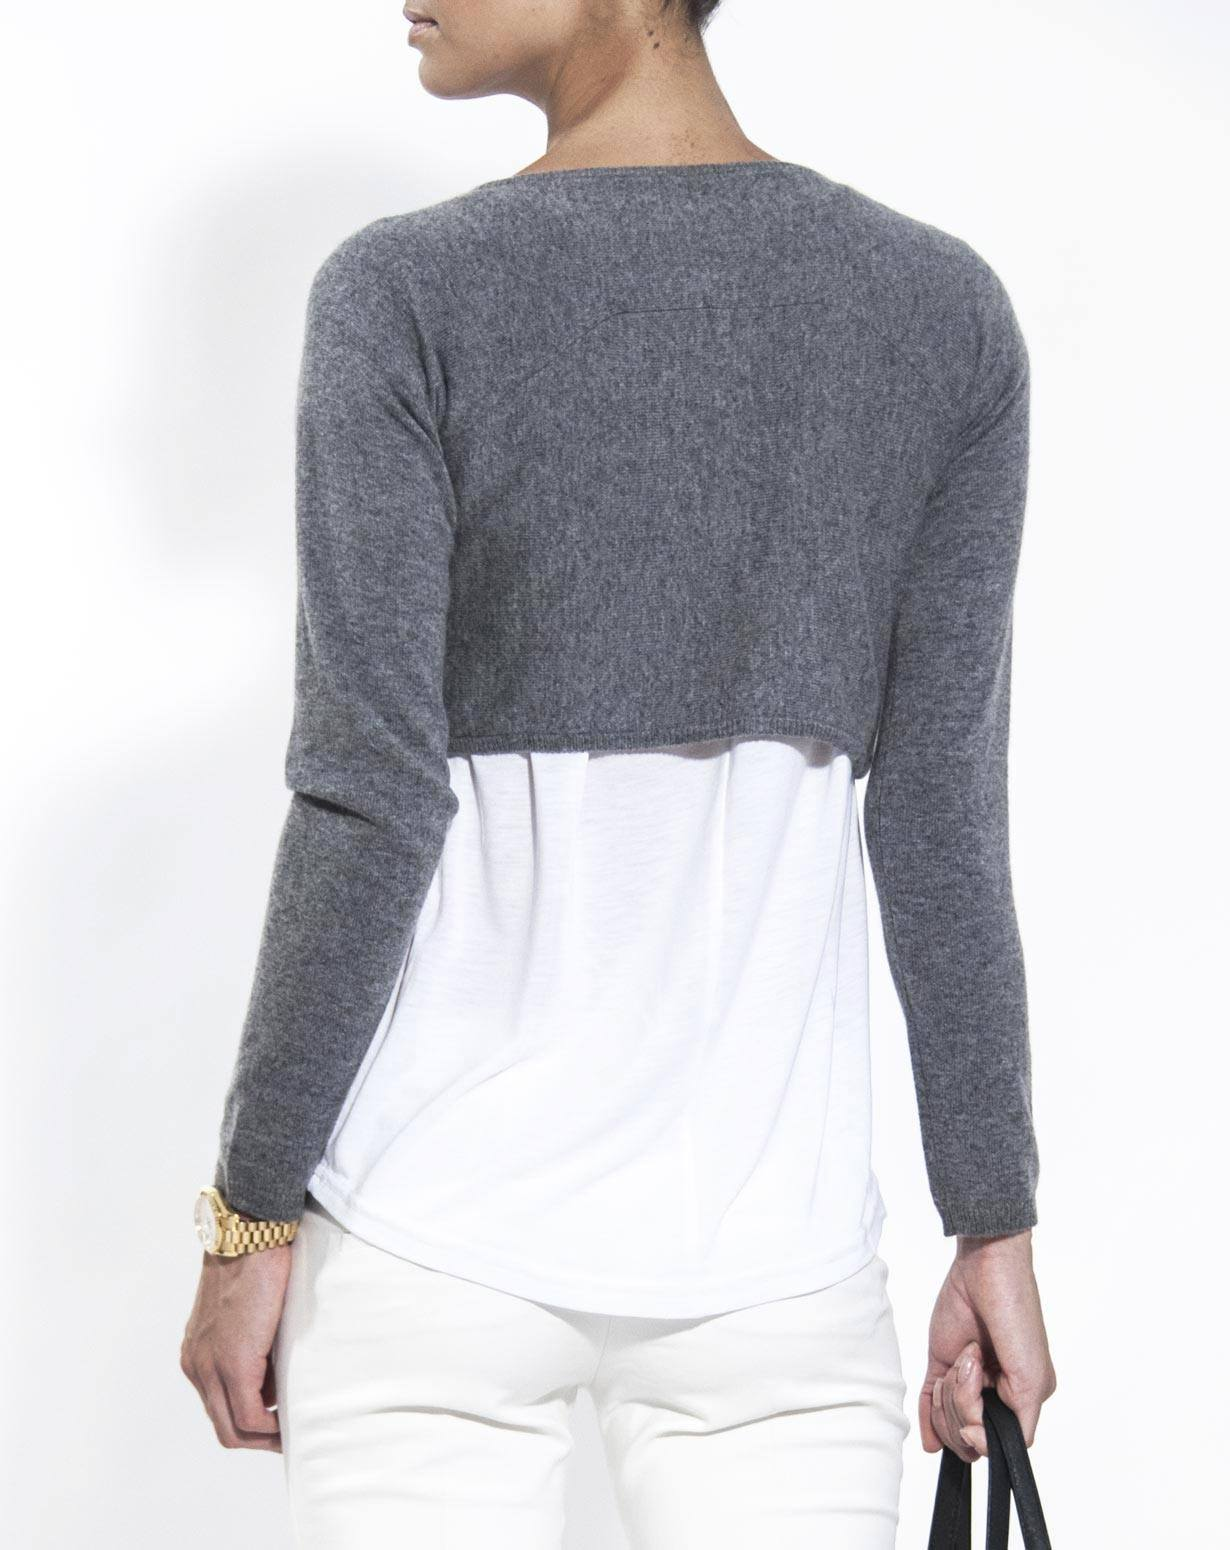 Pure Cashmere Shrug Sweater | MaisonCashmere